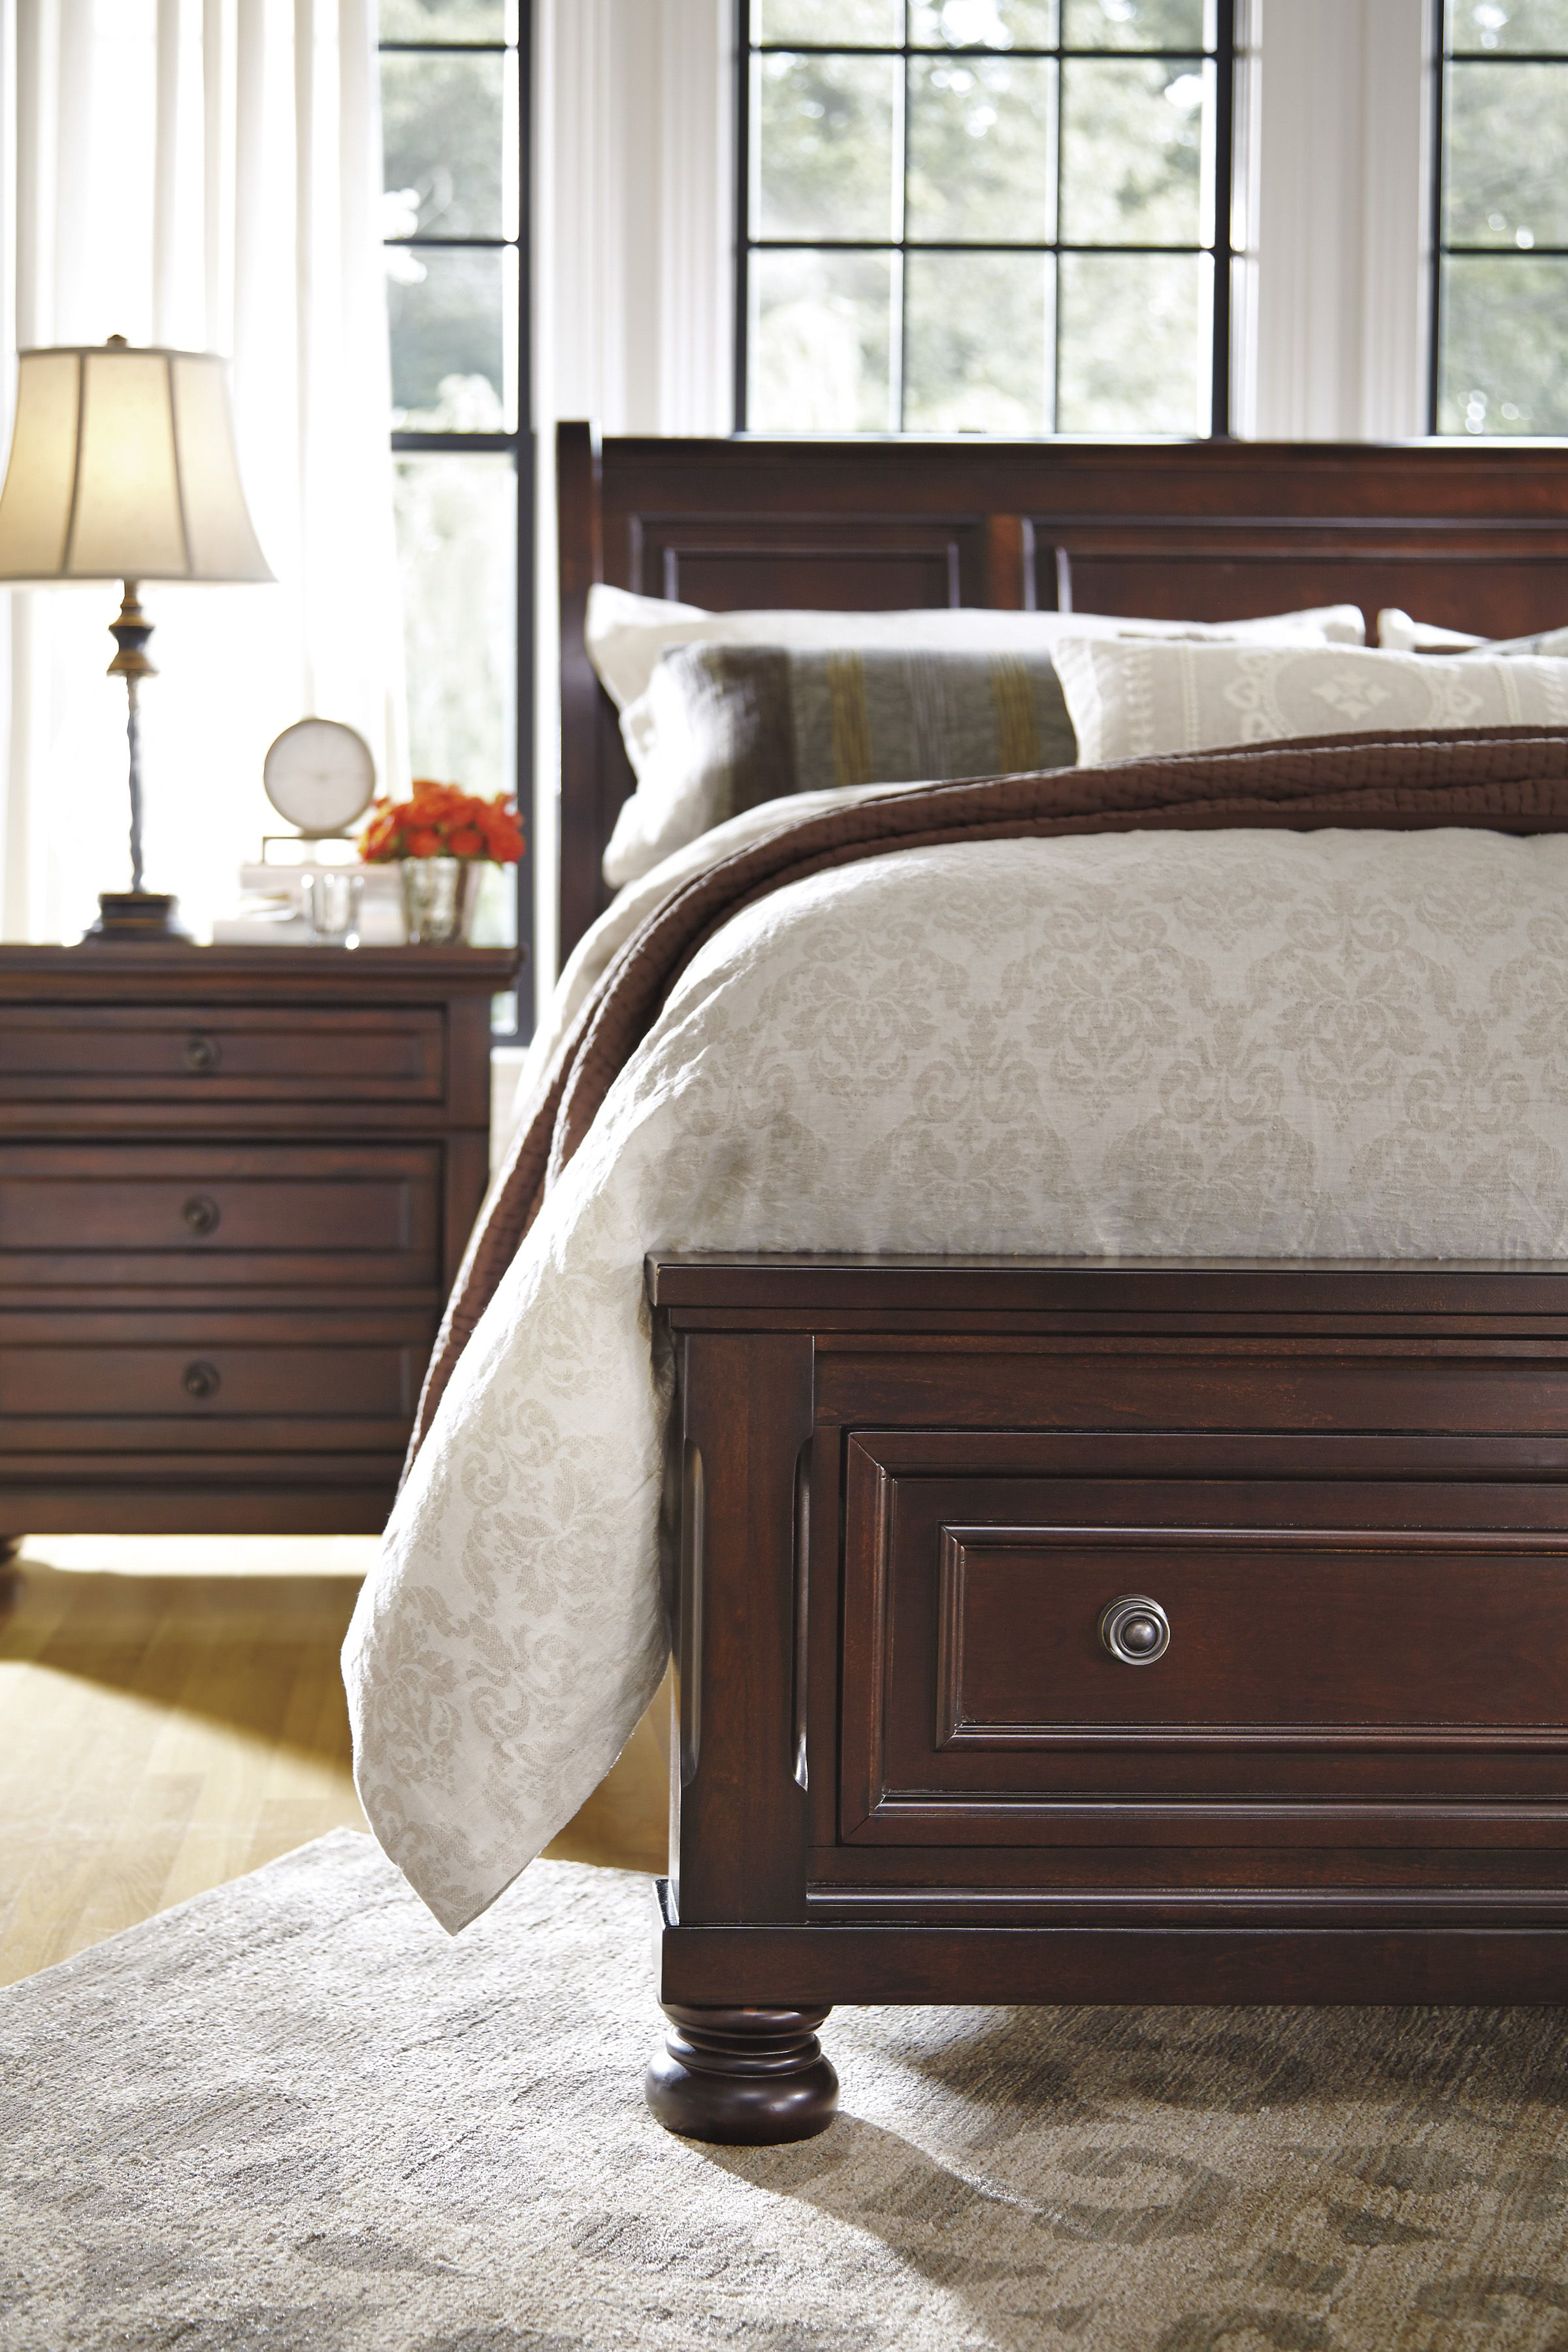 Shop For A Isabella Light Wash 5 Pc Queen Panel Bedroom At Rooms To Go.  Find Queen Bedroom Sets That Will Look Great In Your Home And Complement U2026